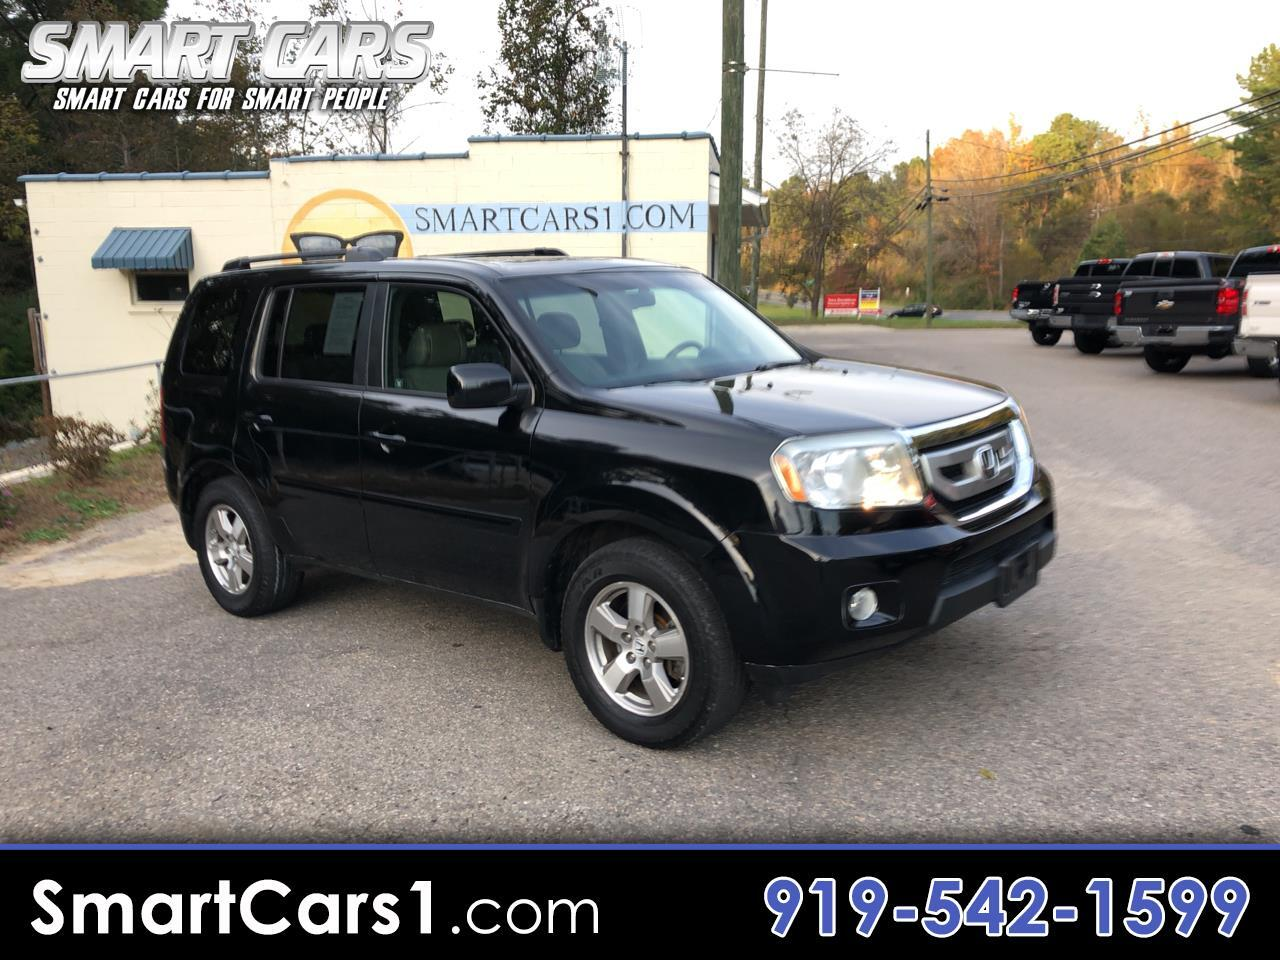 Used 2010 Honda Pilot For Sale In Pittsboro Nc 27312 Smart Cars By